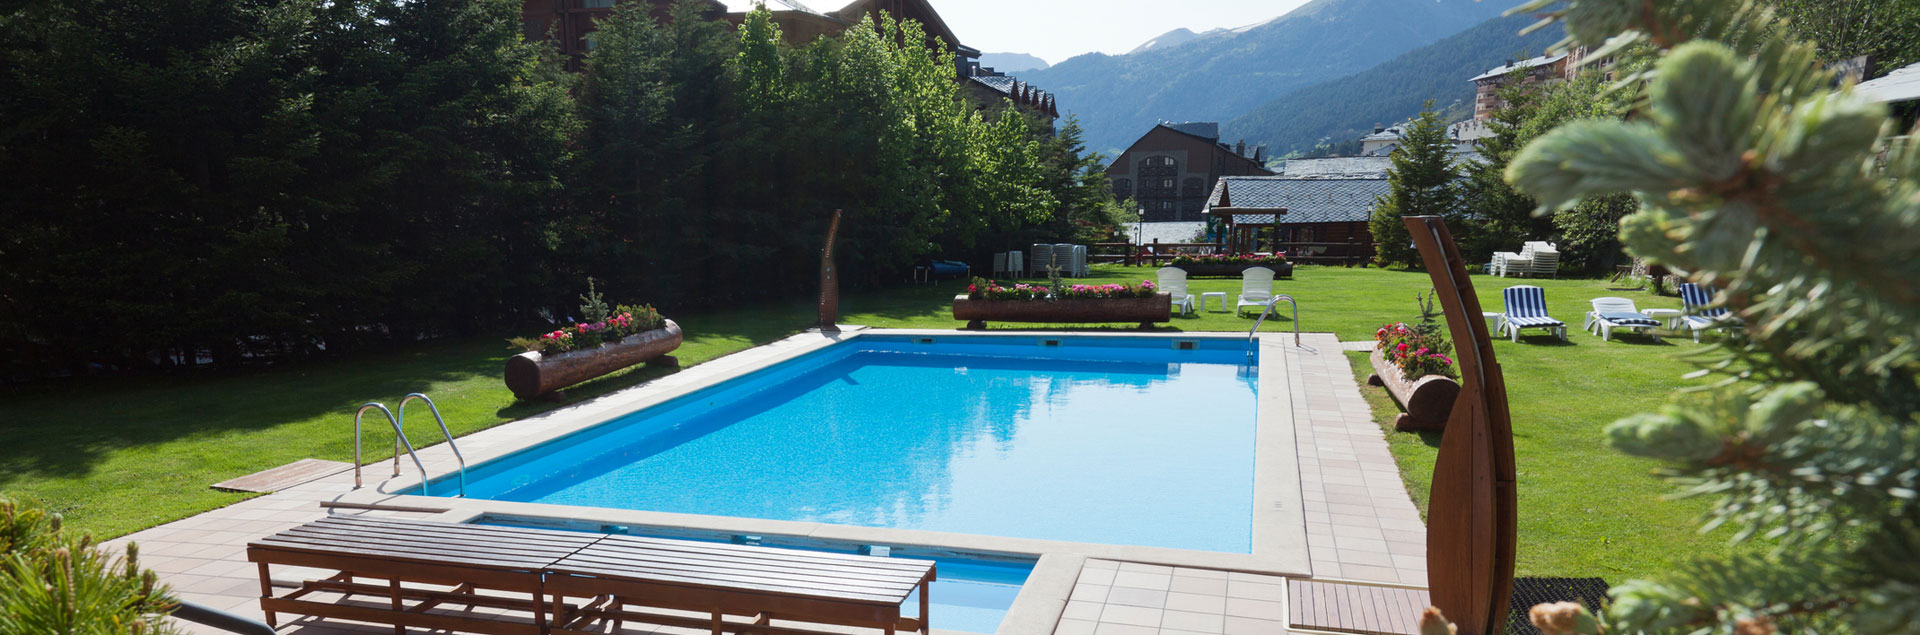 Familiar hotels in Soldeu with outdoor pool in summer